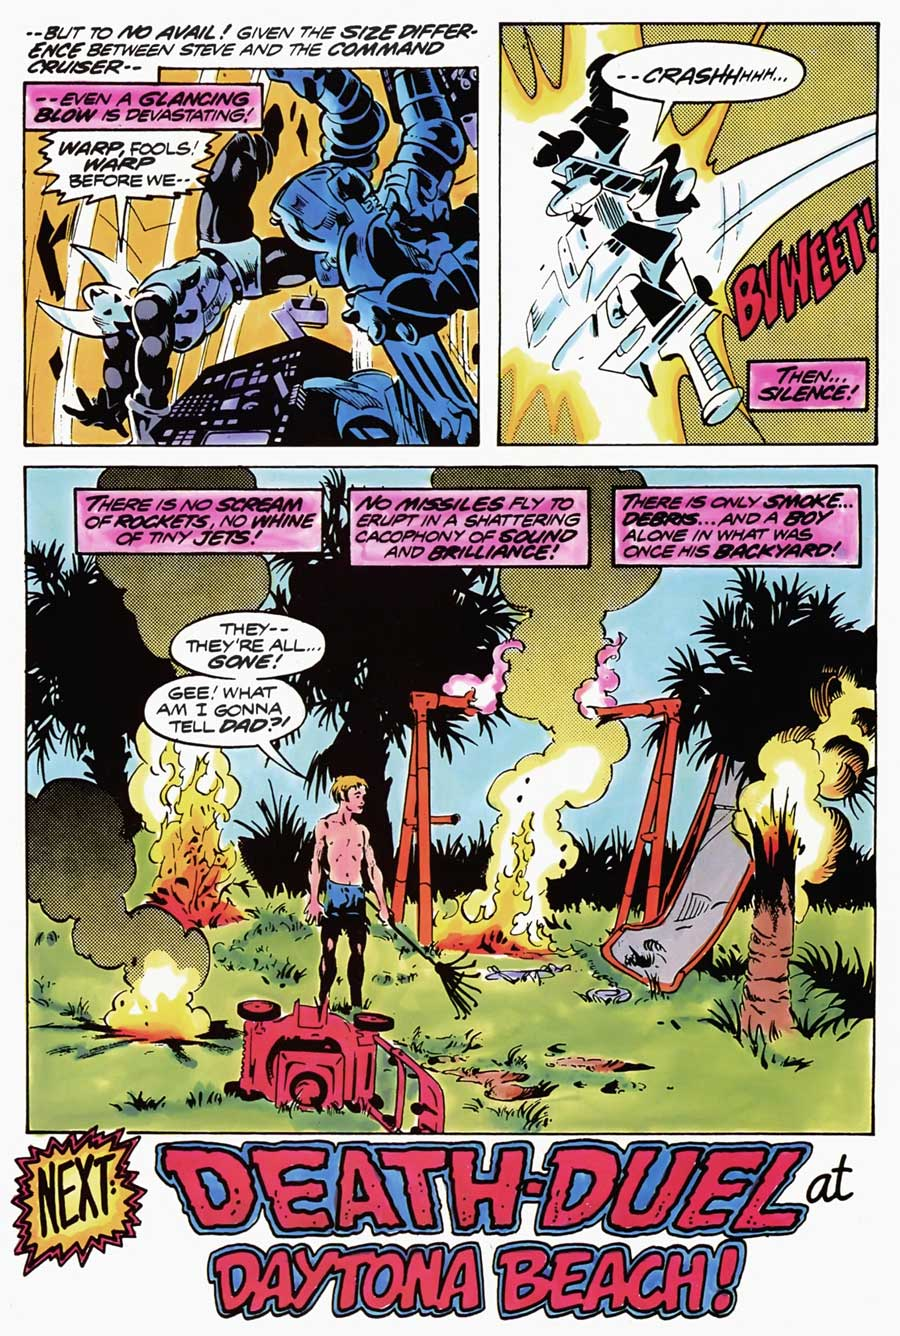 Micronauts #2 by Bill Mantlo and Michael Golden